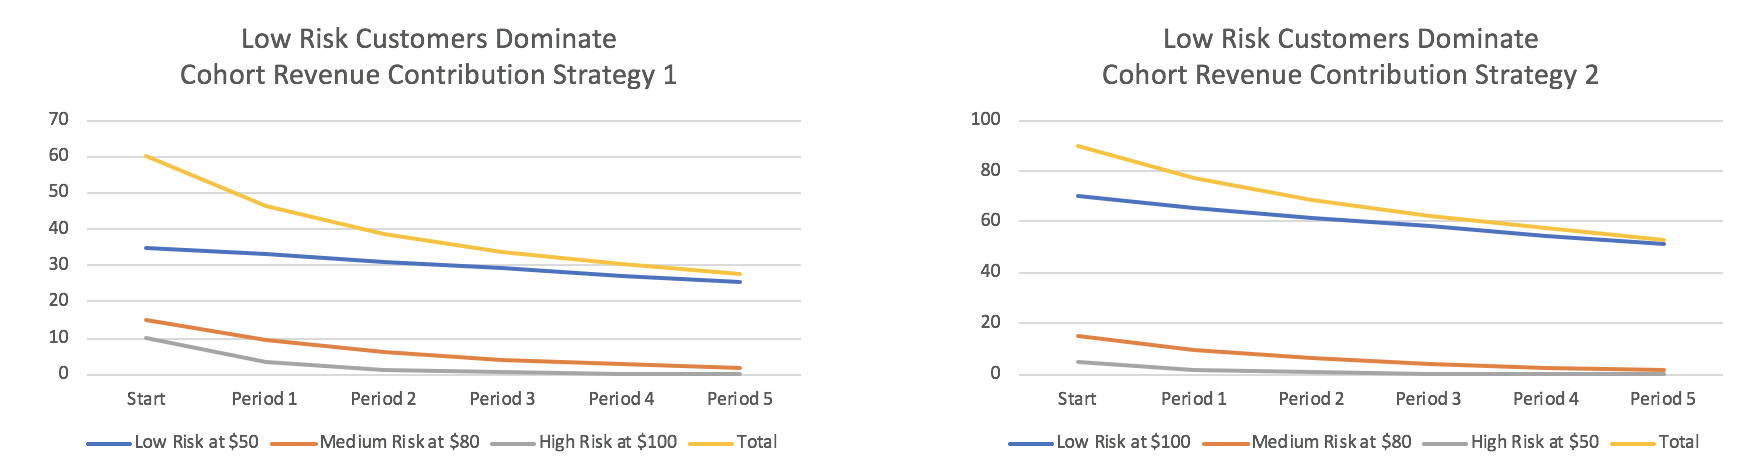 Cohort Revenue by Strategy Low Risk Dominate